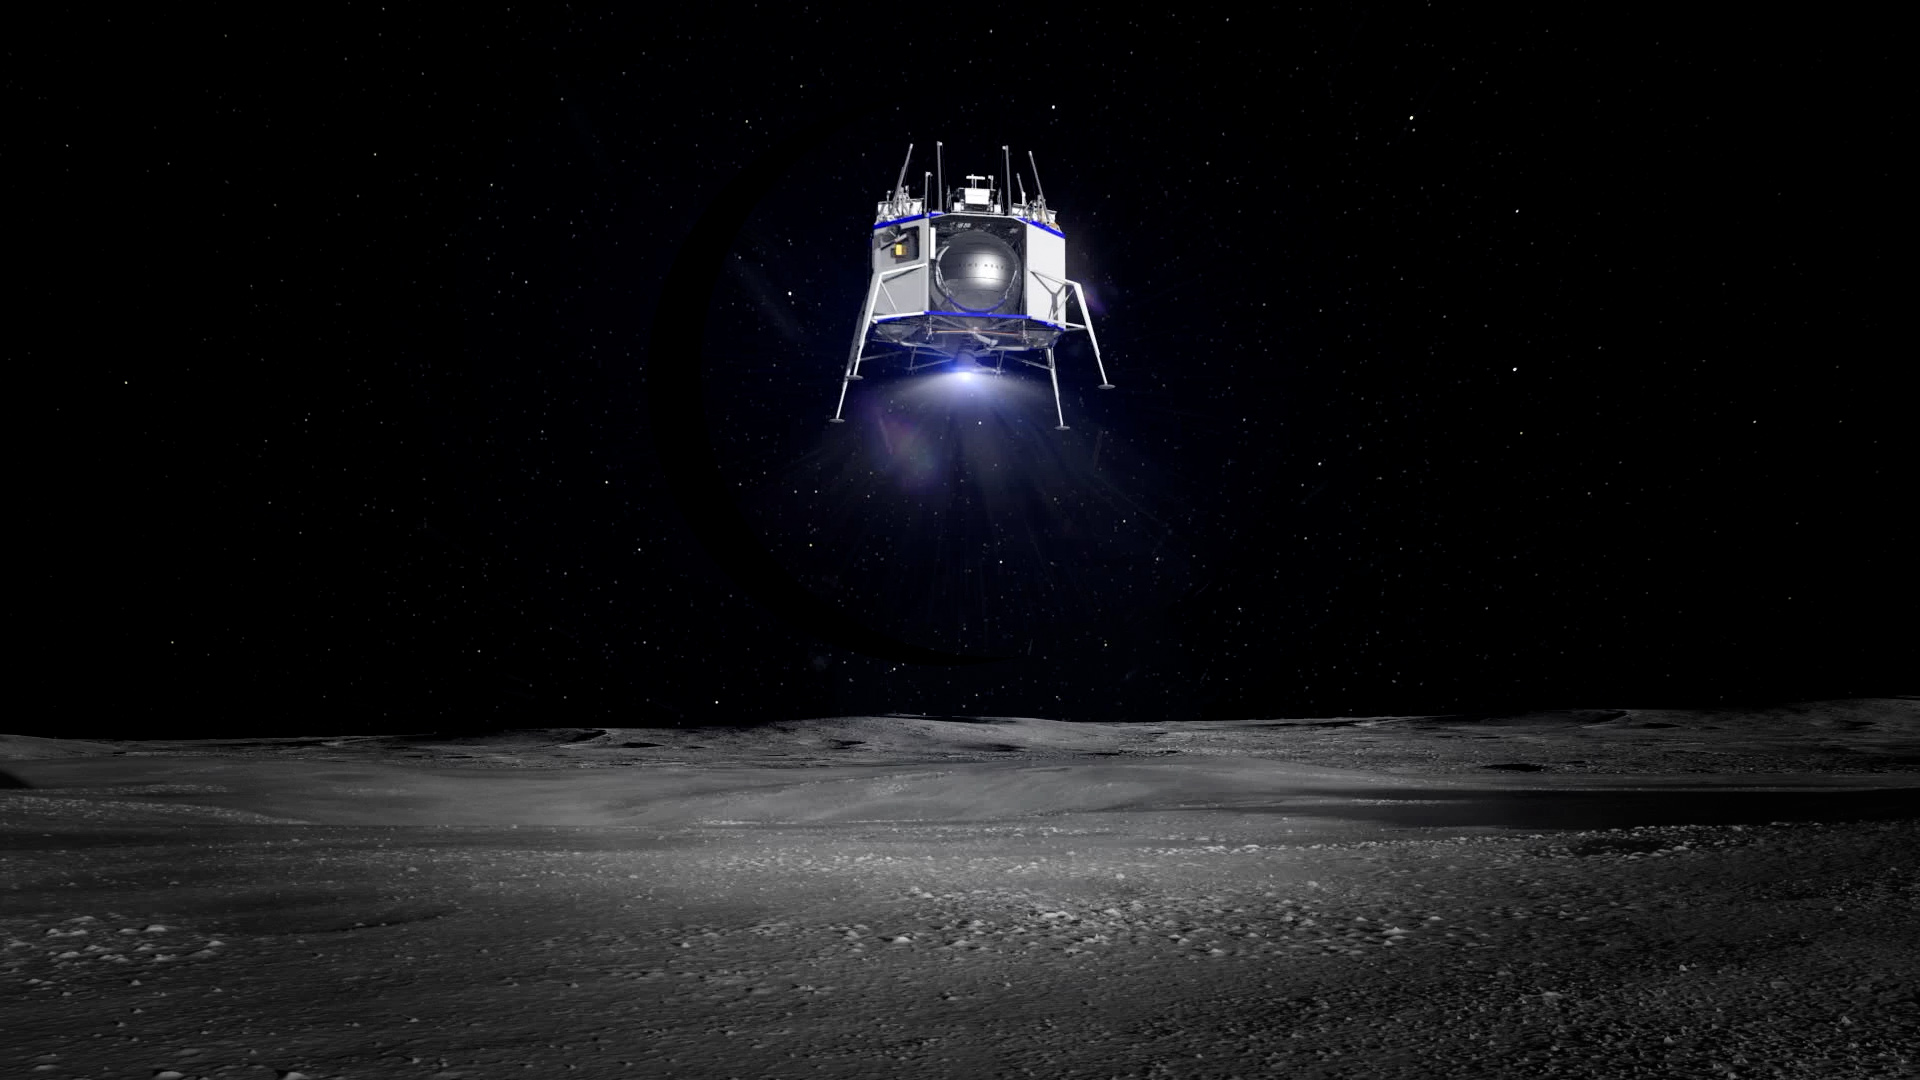 Jeff Bezos wants to solve all our problems by shipping us to the moon